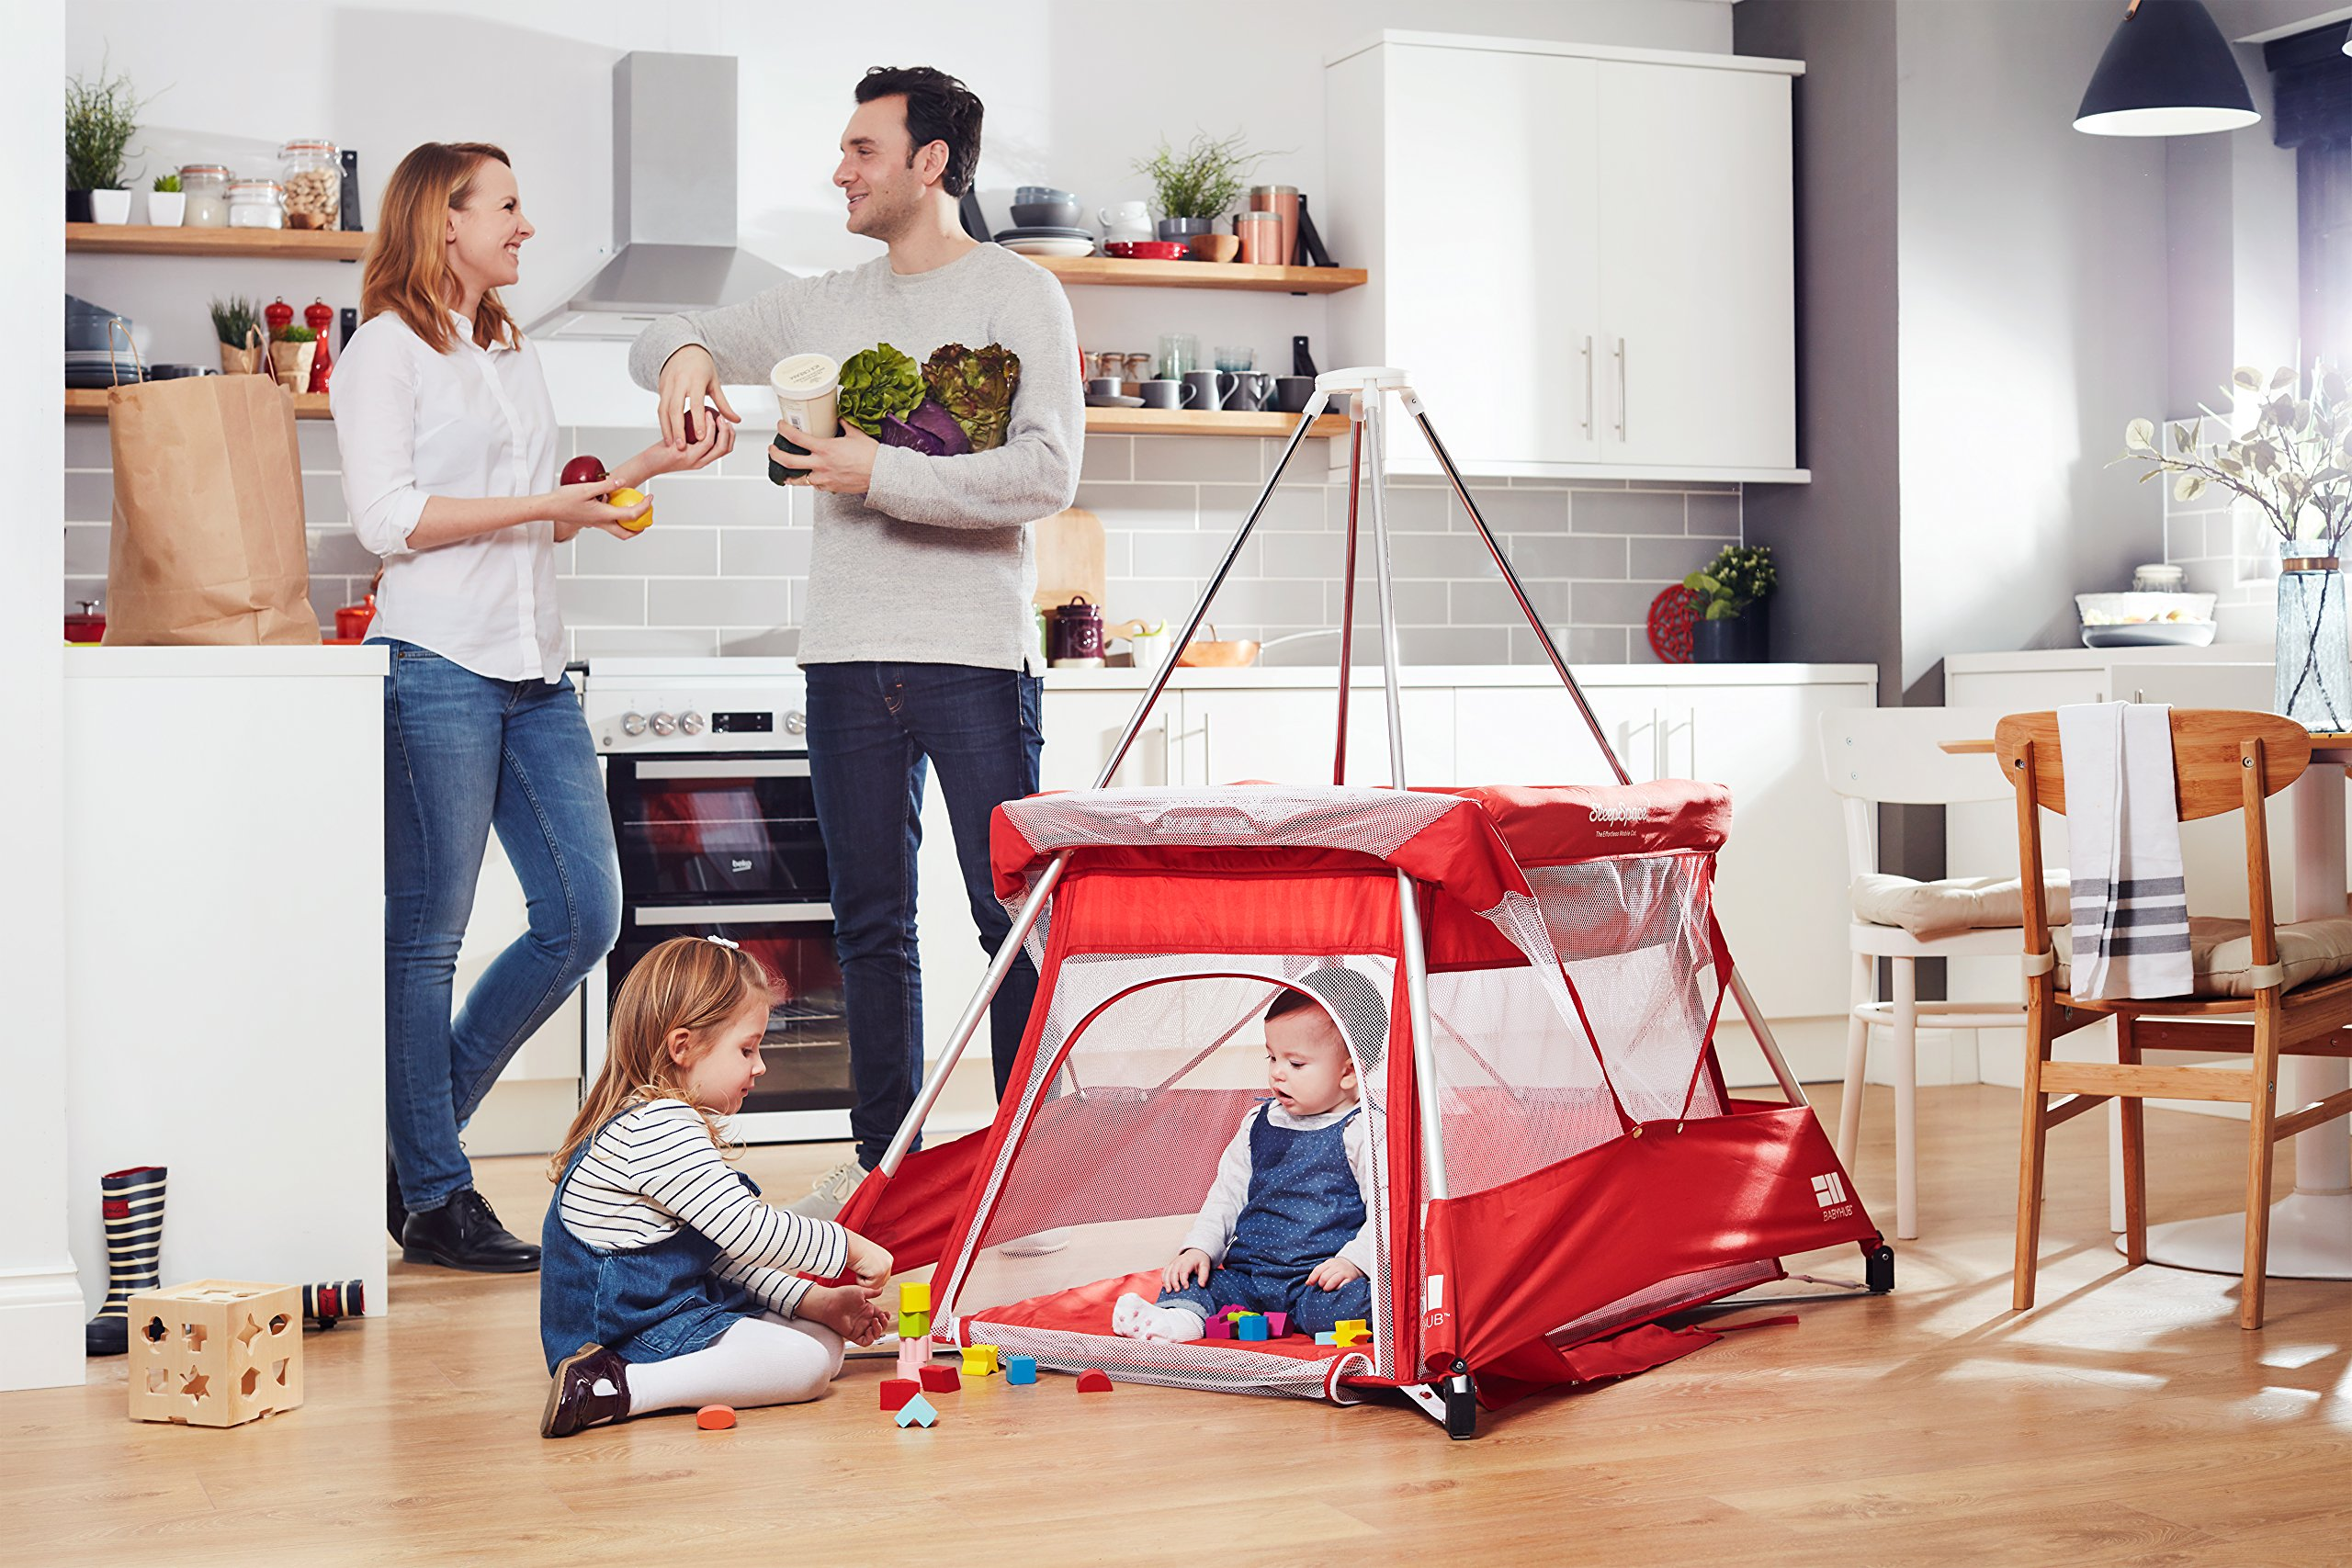 BabyHub SleepSpace Travel Cot with Mosquito Net, Red BabyHub Three cots in one; use as a travel cot, mosquito proof space and reuse as a play tepee Includes extra mosquito net cover that can be securely in place Can be set up and moved even while holding a baby 4